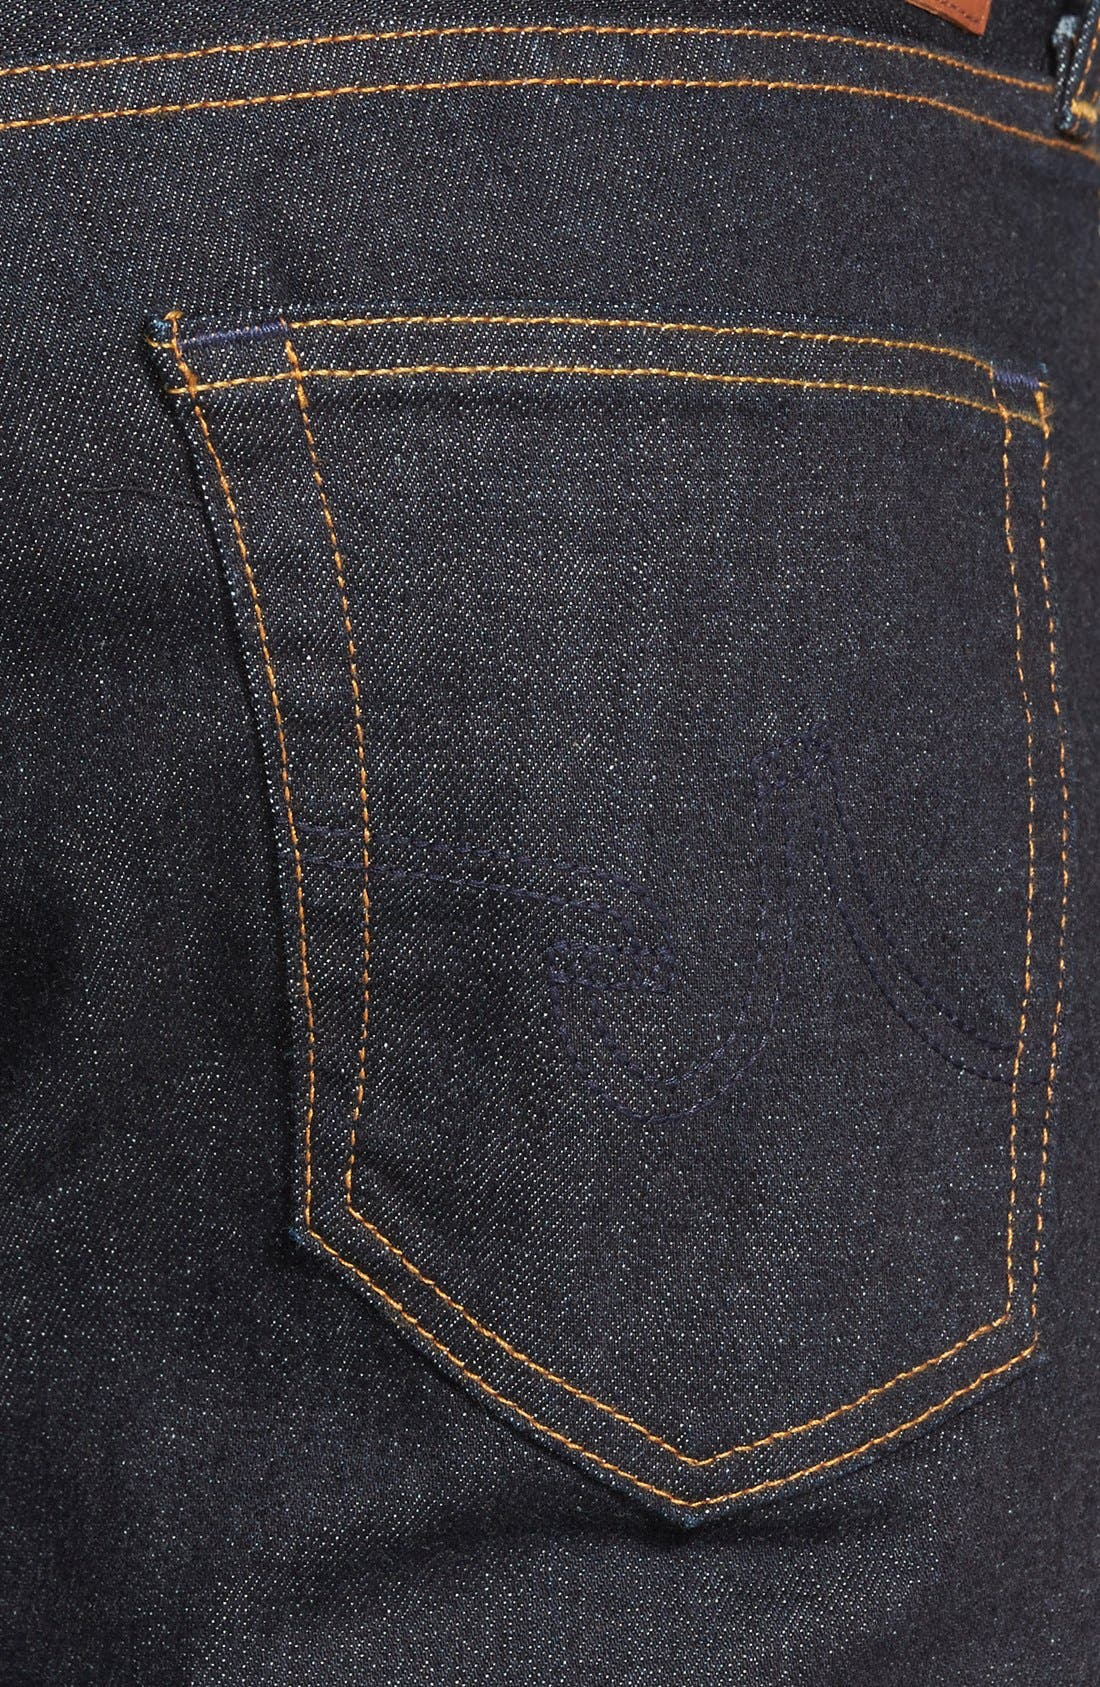 Protégé Straight Leg Jeans,                             Alternate thumbnail 4, color,                             Jack